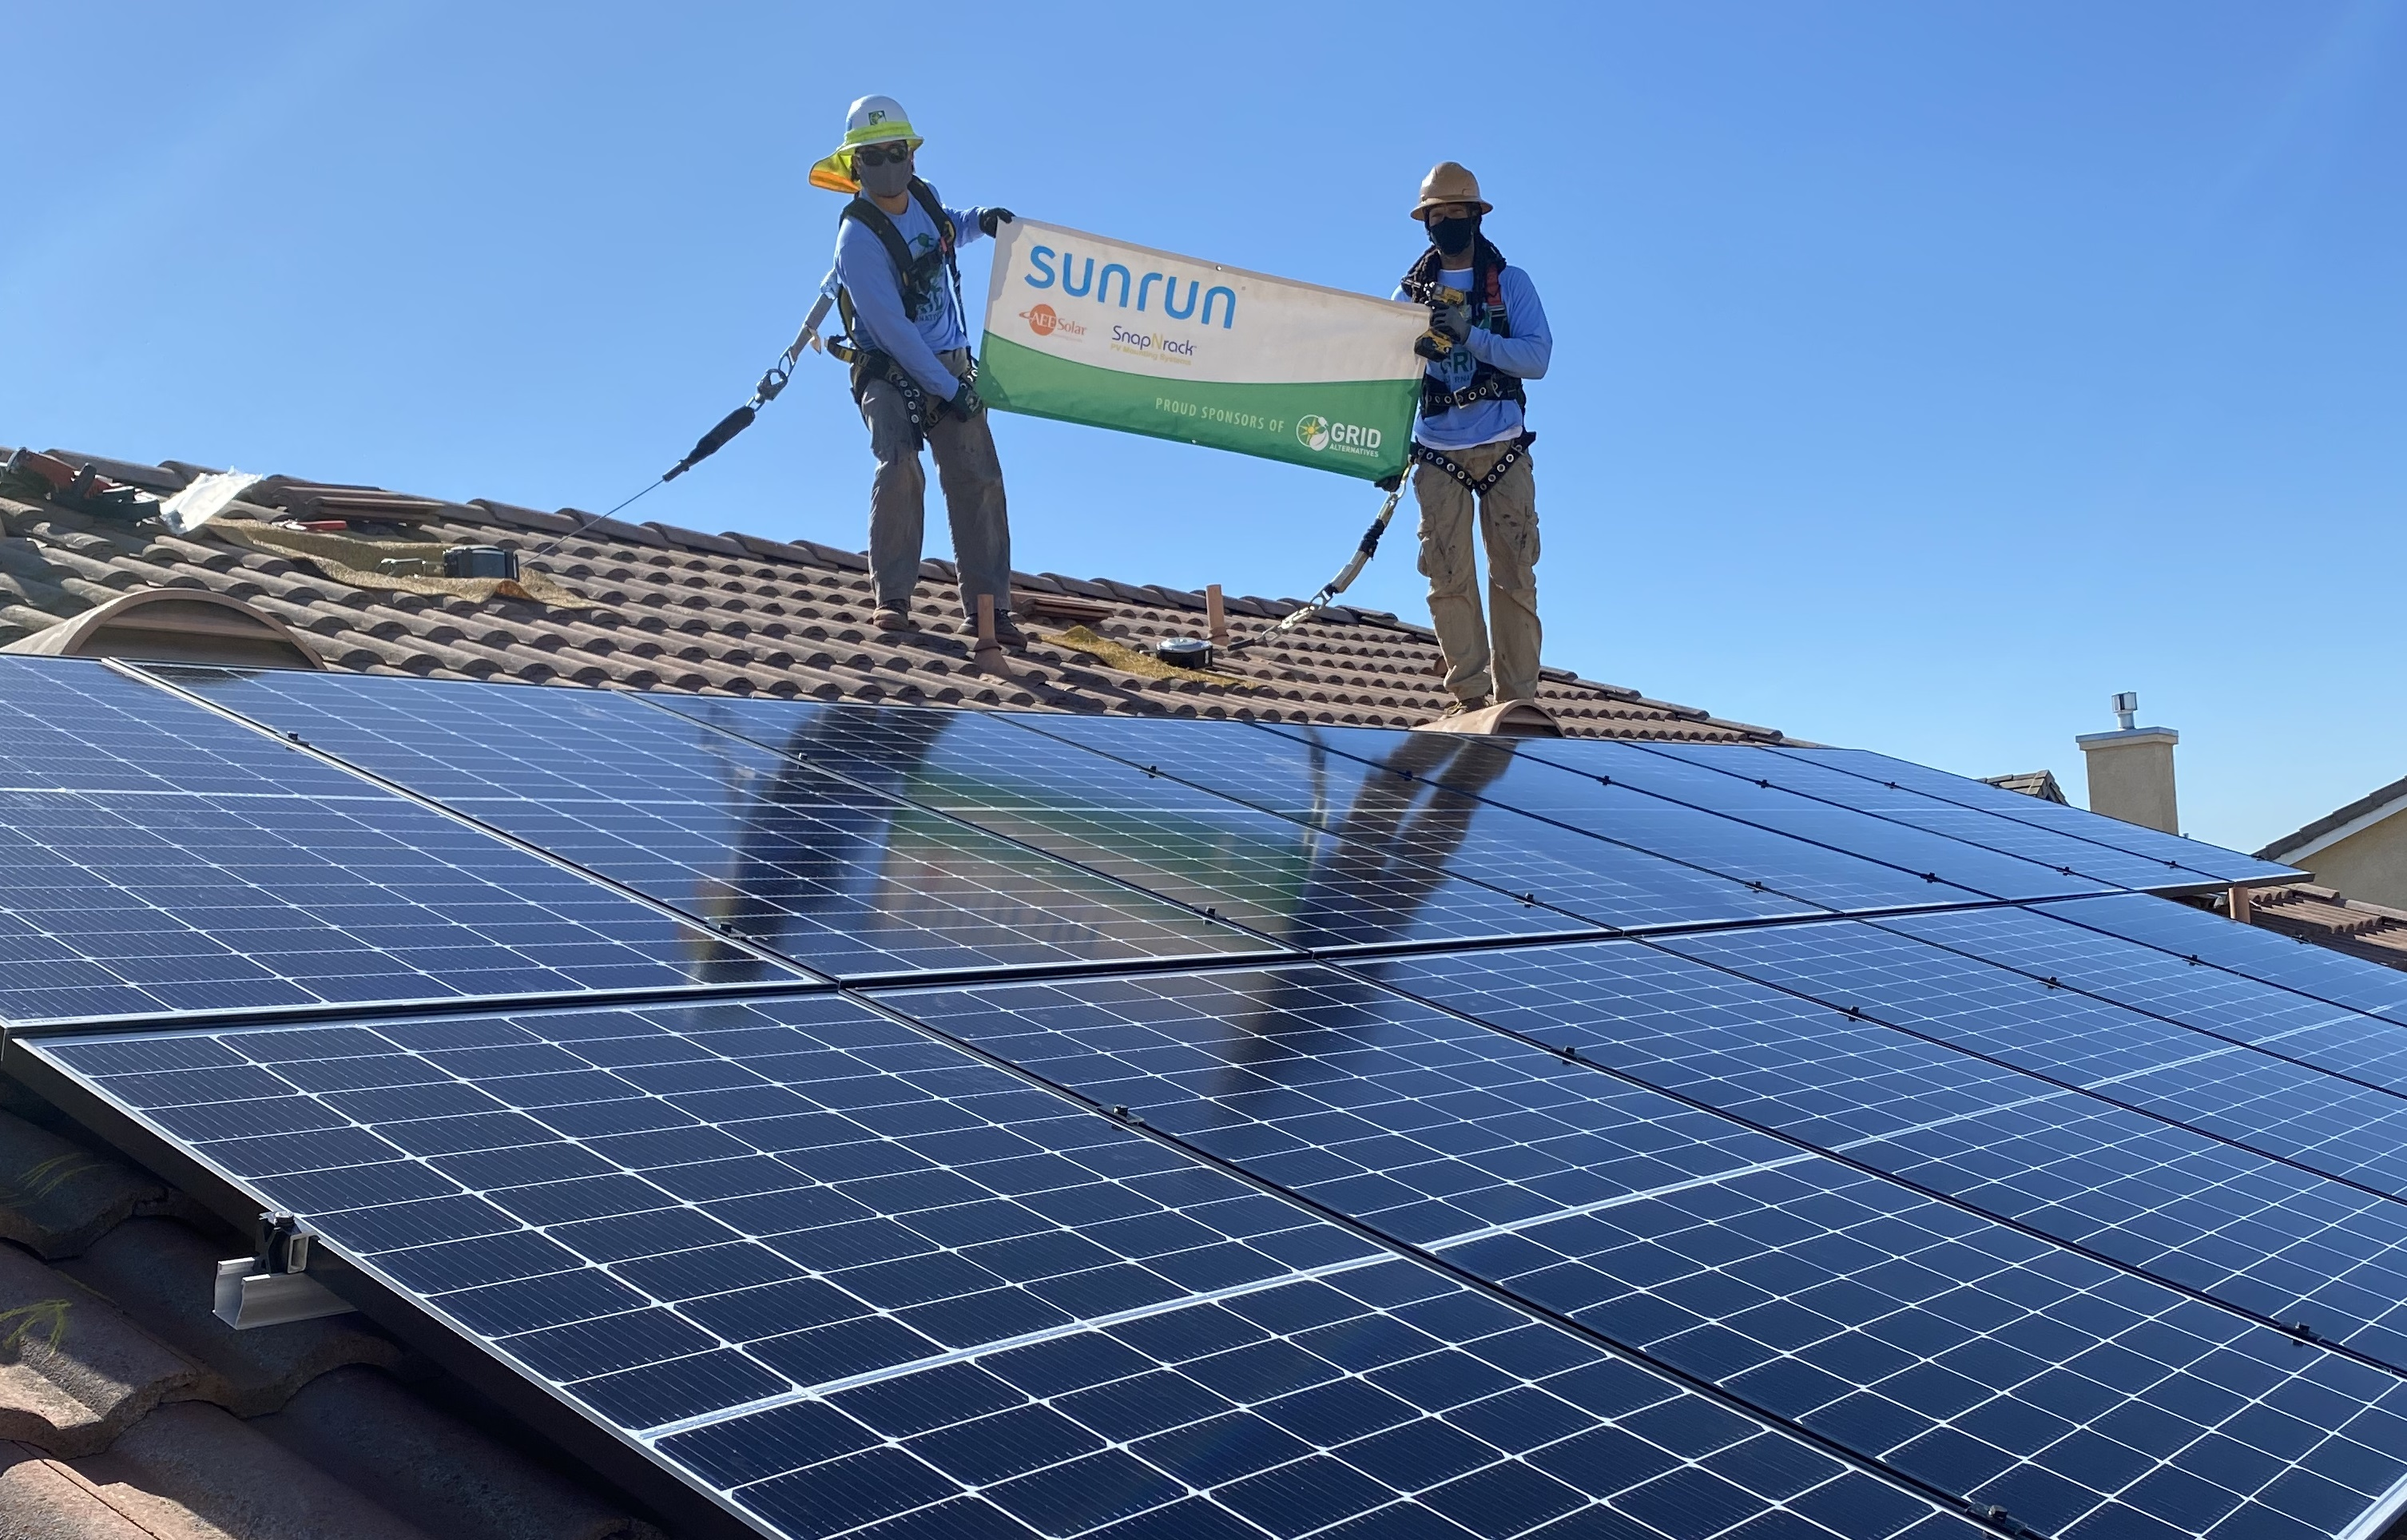 solar installers stand on roof with banner